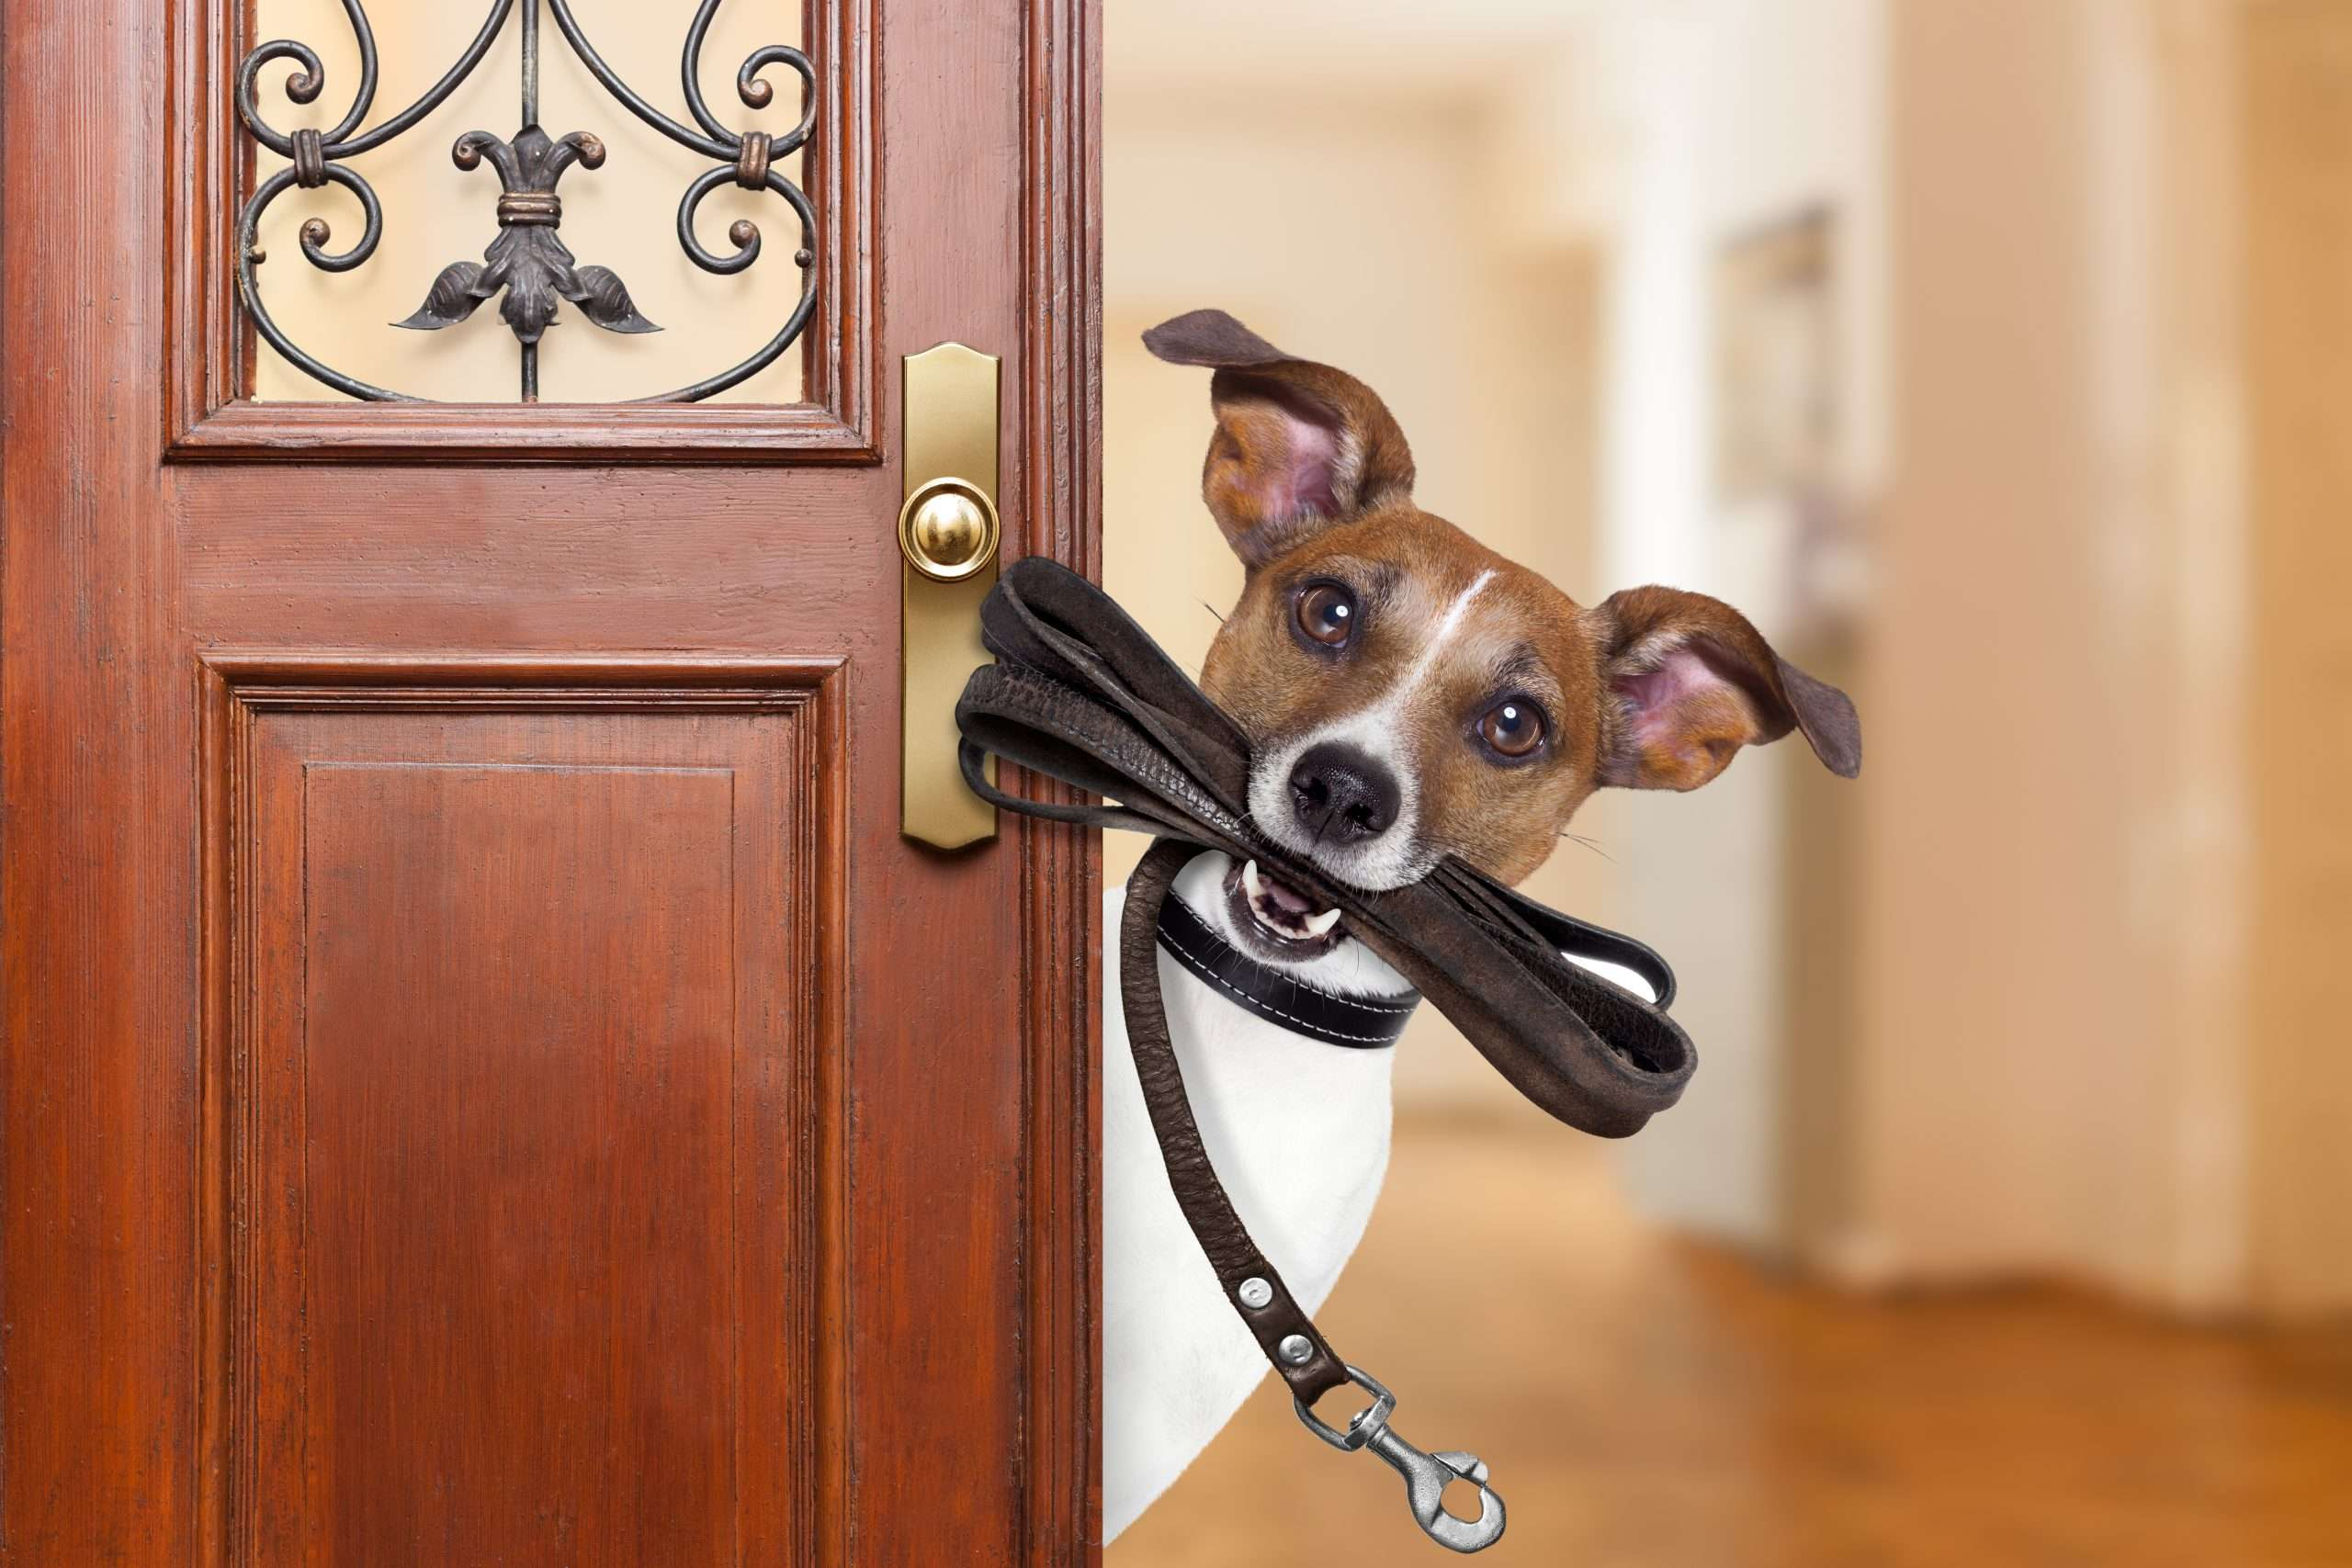 Risks of starting a dog walking business – Be careful!